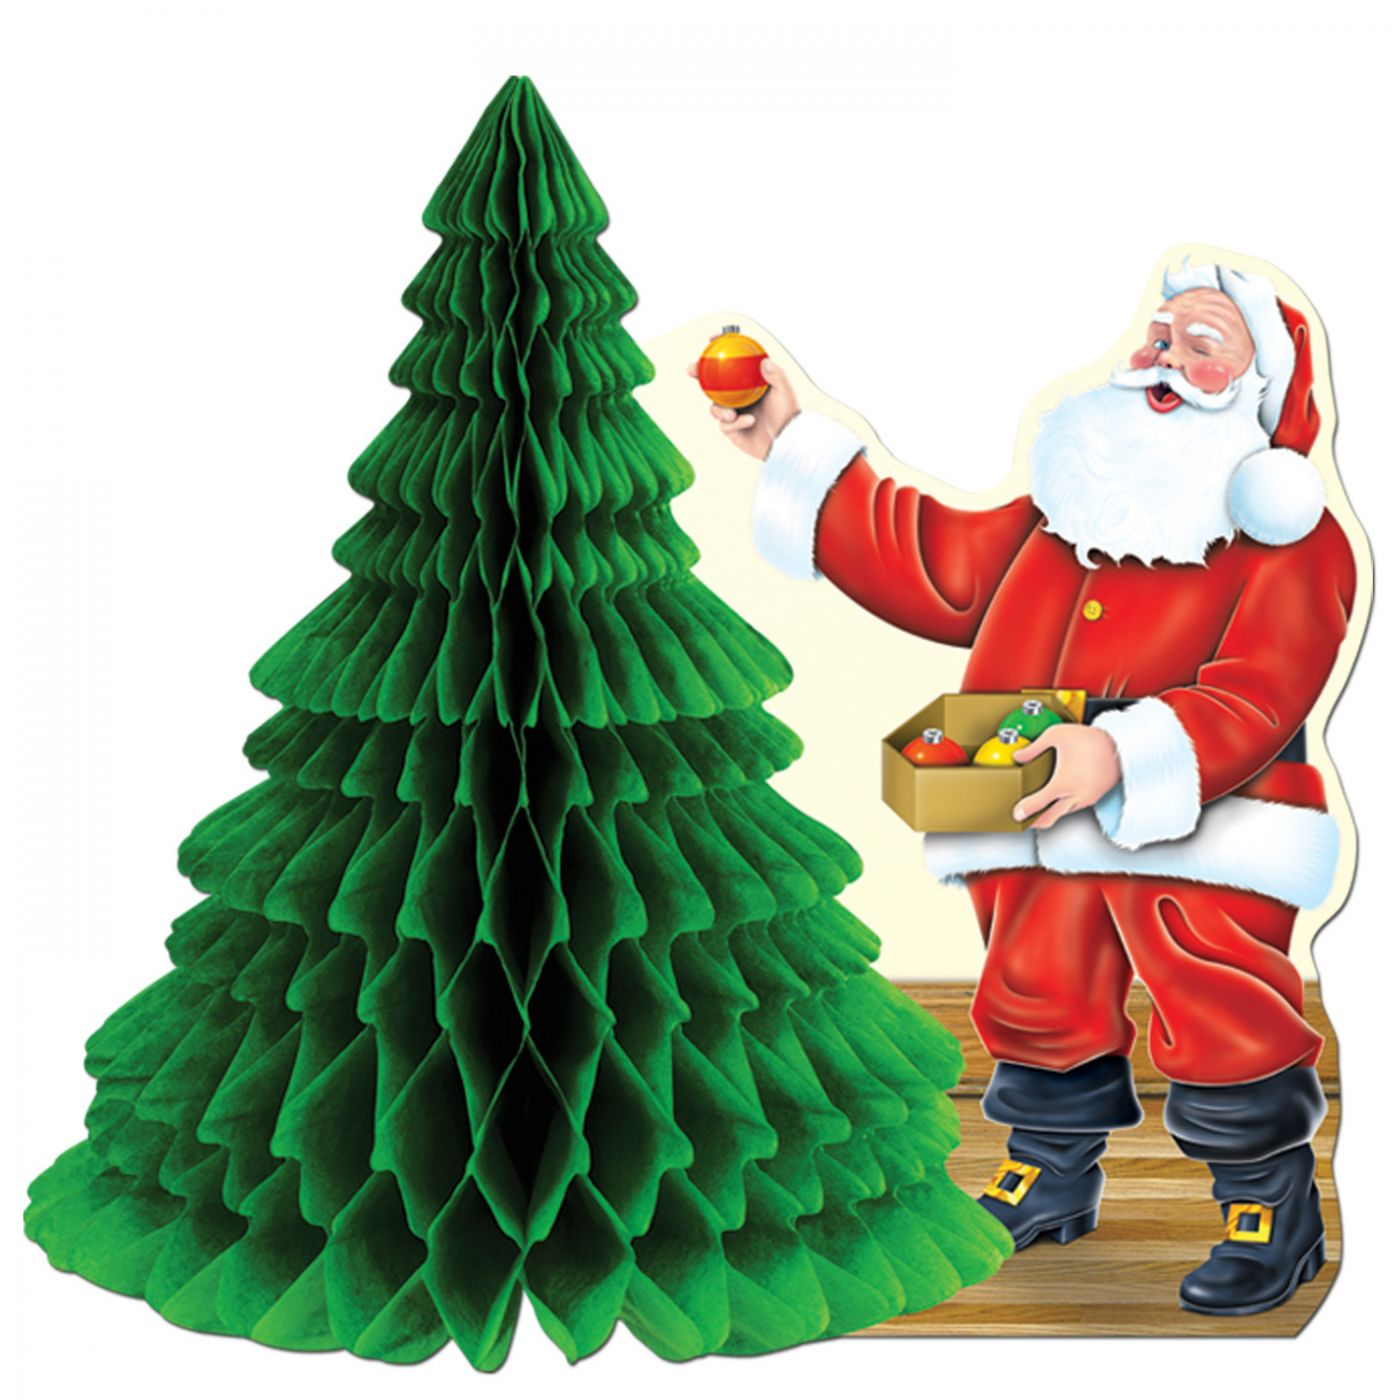 Santa w/Tissue Tree Centerpiece image